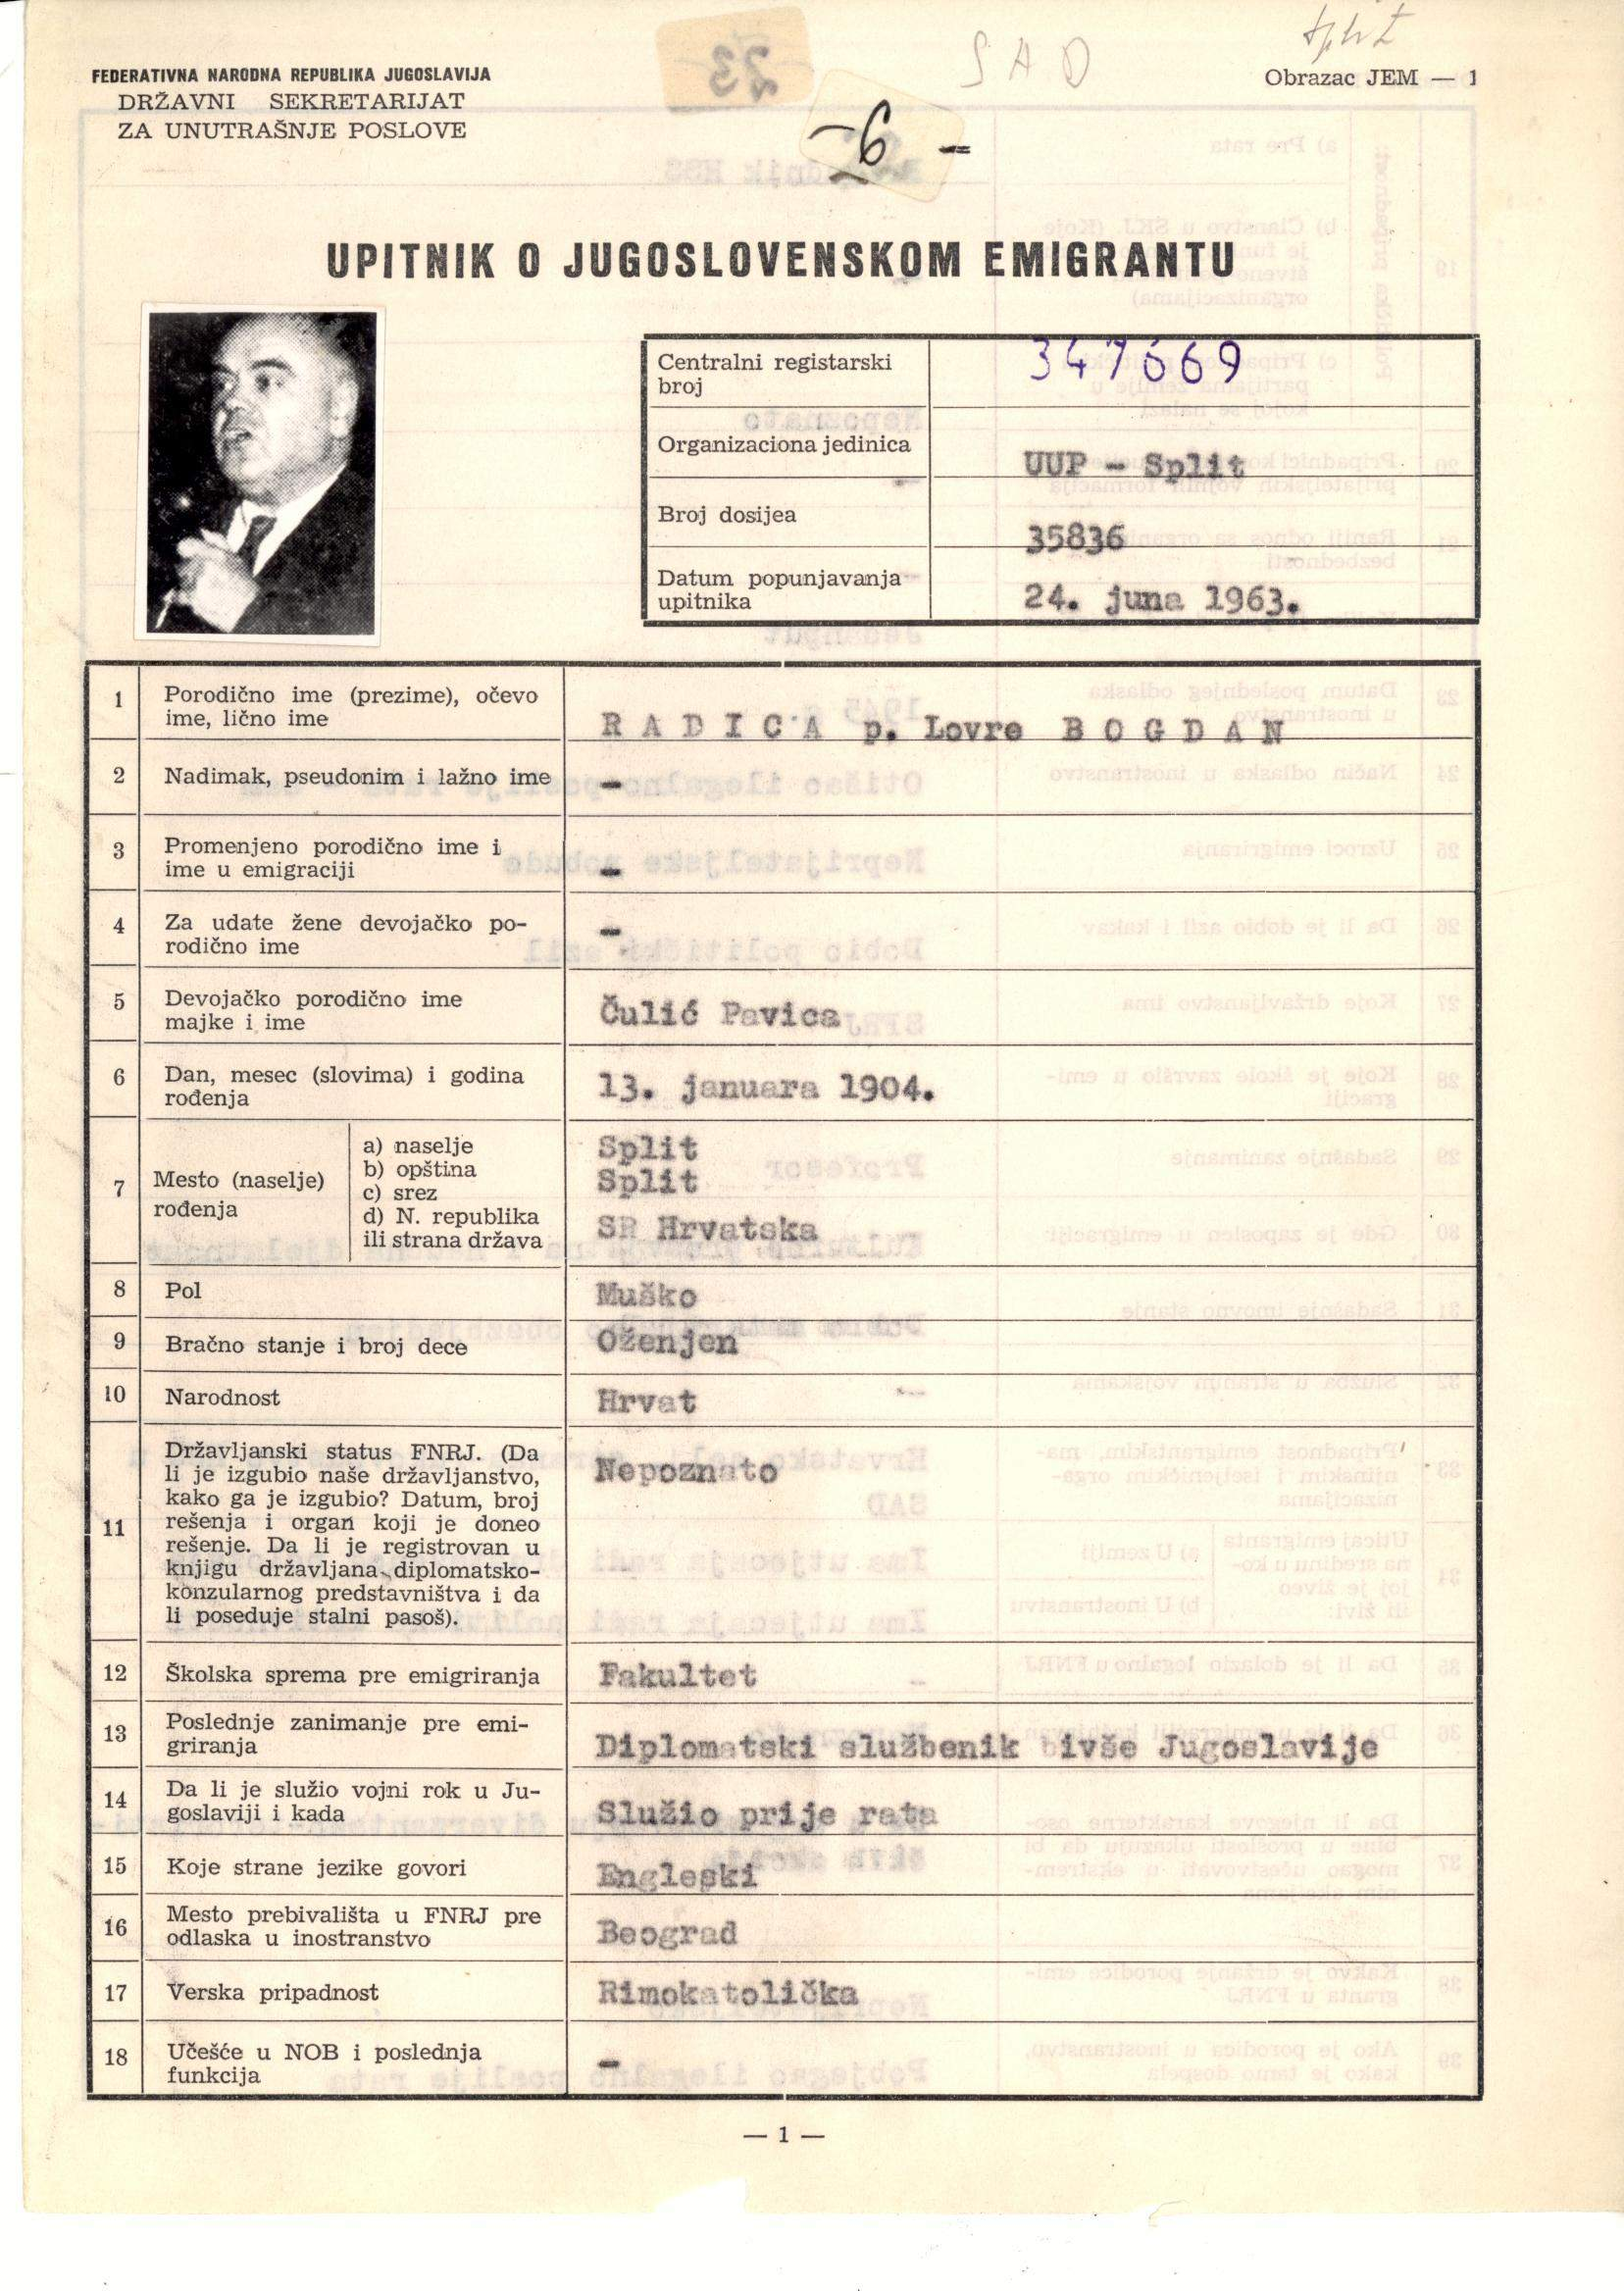 Questionnaire on the Yugoslav emigrant in Bogdan Radica's intelligence file. 24 June 1963. Archival document.